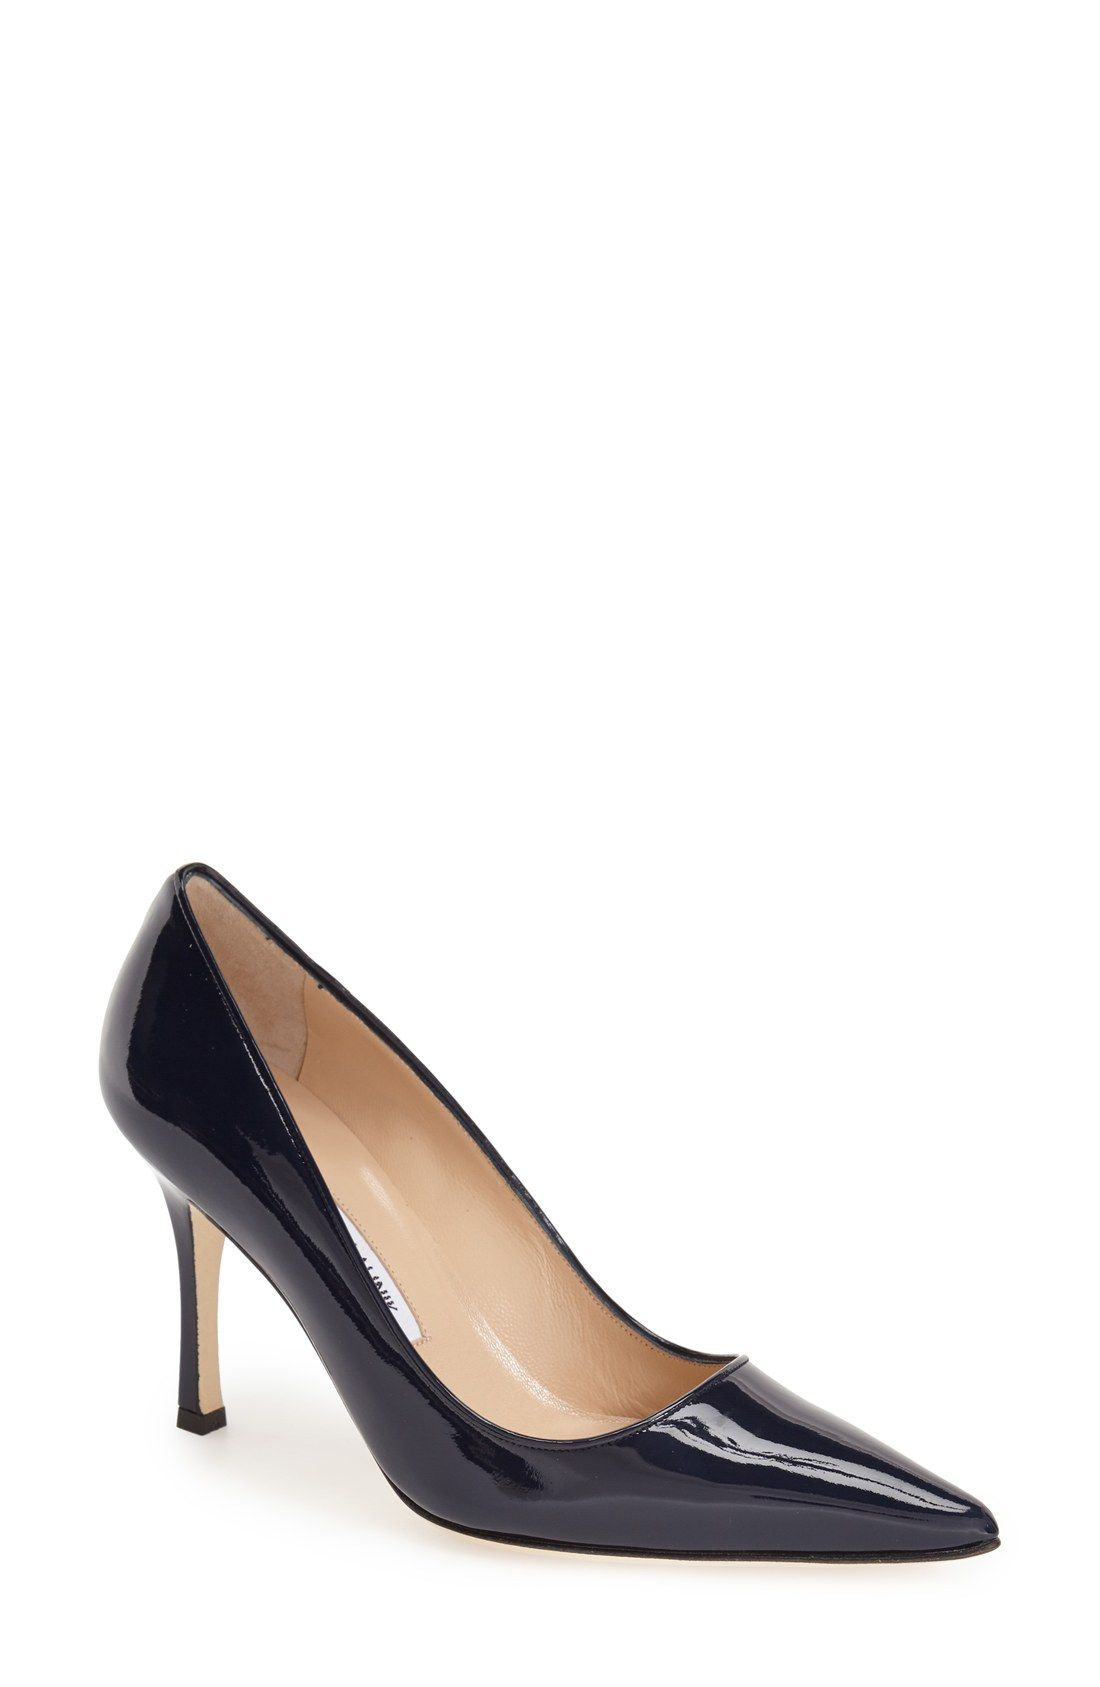 Manolo Blahnik Newcio Patent Pumps cheap USA stockist how much for sale discount official latest cheap online free shipping new arrival q7MF5c7